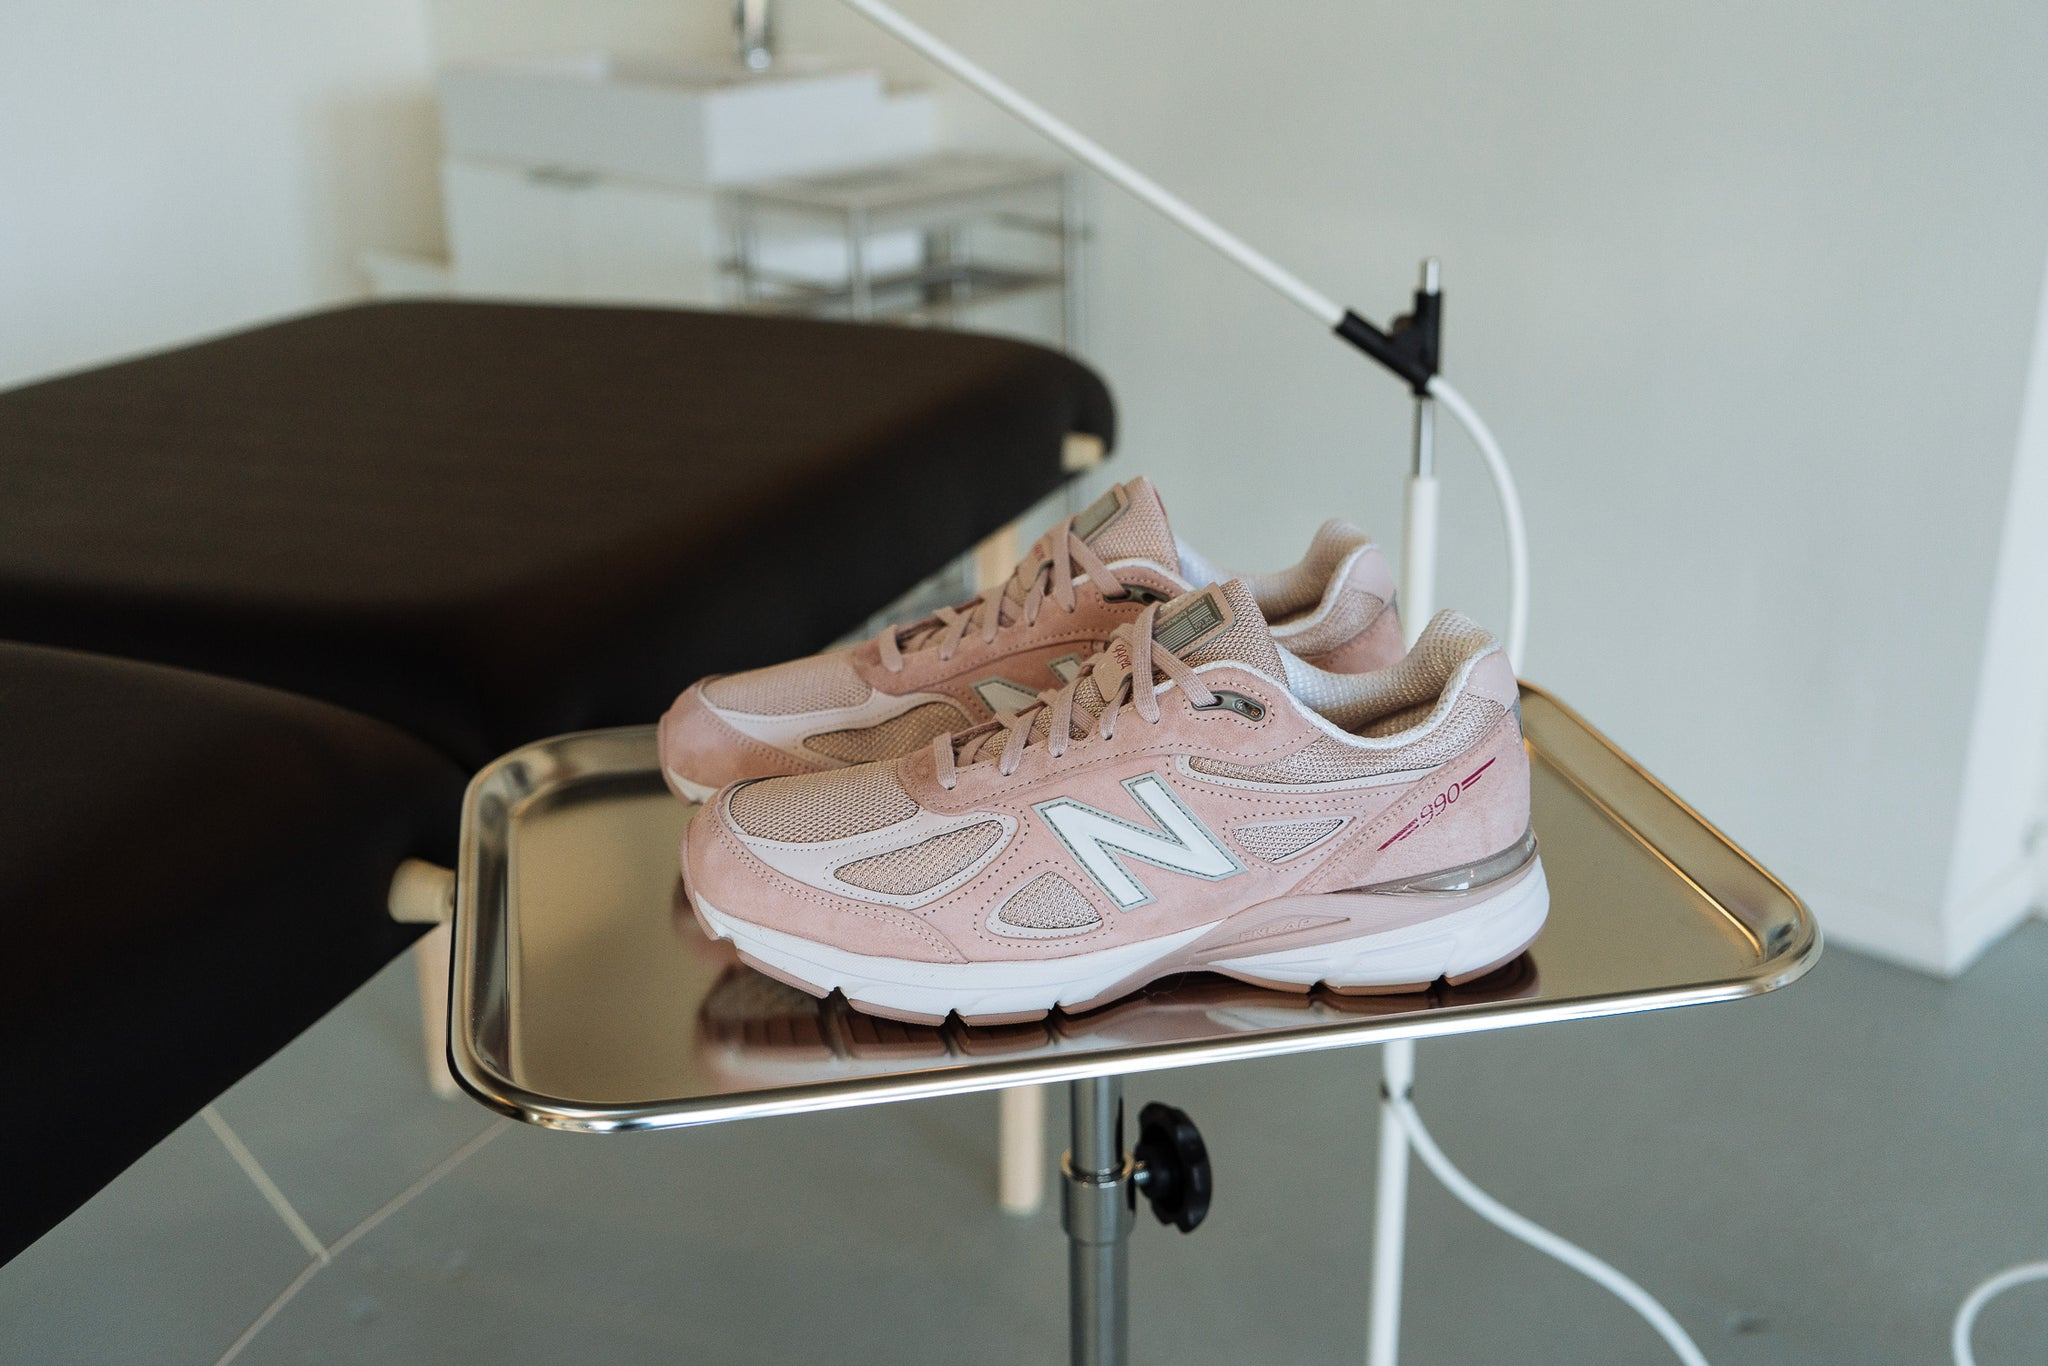 New Balance 990v4 'Pink Ribbon' - David Allen Tattoo - Notre Chicago